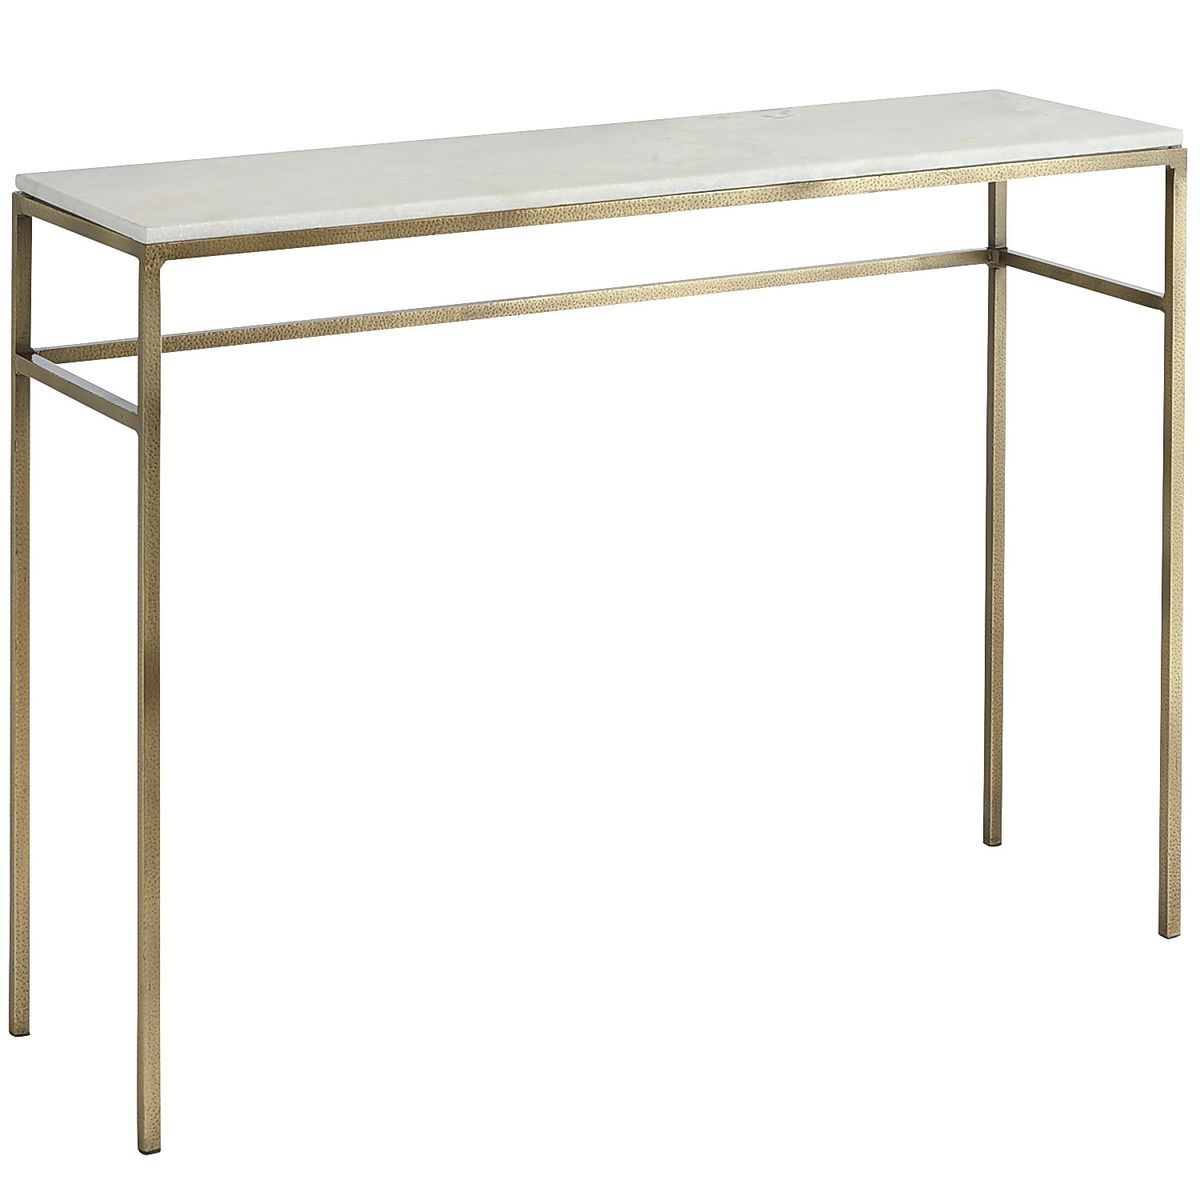 If You're Looking For A Way To Elevate Your Living Space, Ethel Intended For Elke Marble Console Tables With Polished Aluminum Base (View 10 of 30)